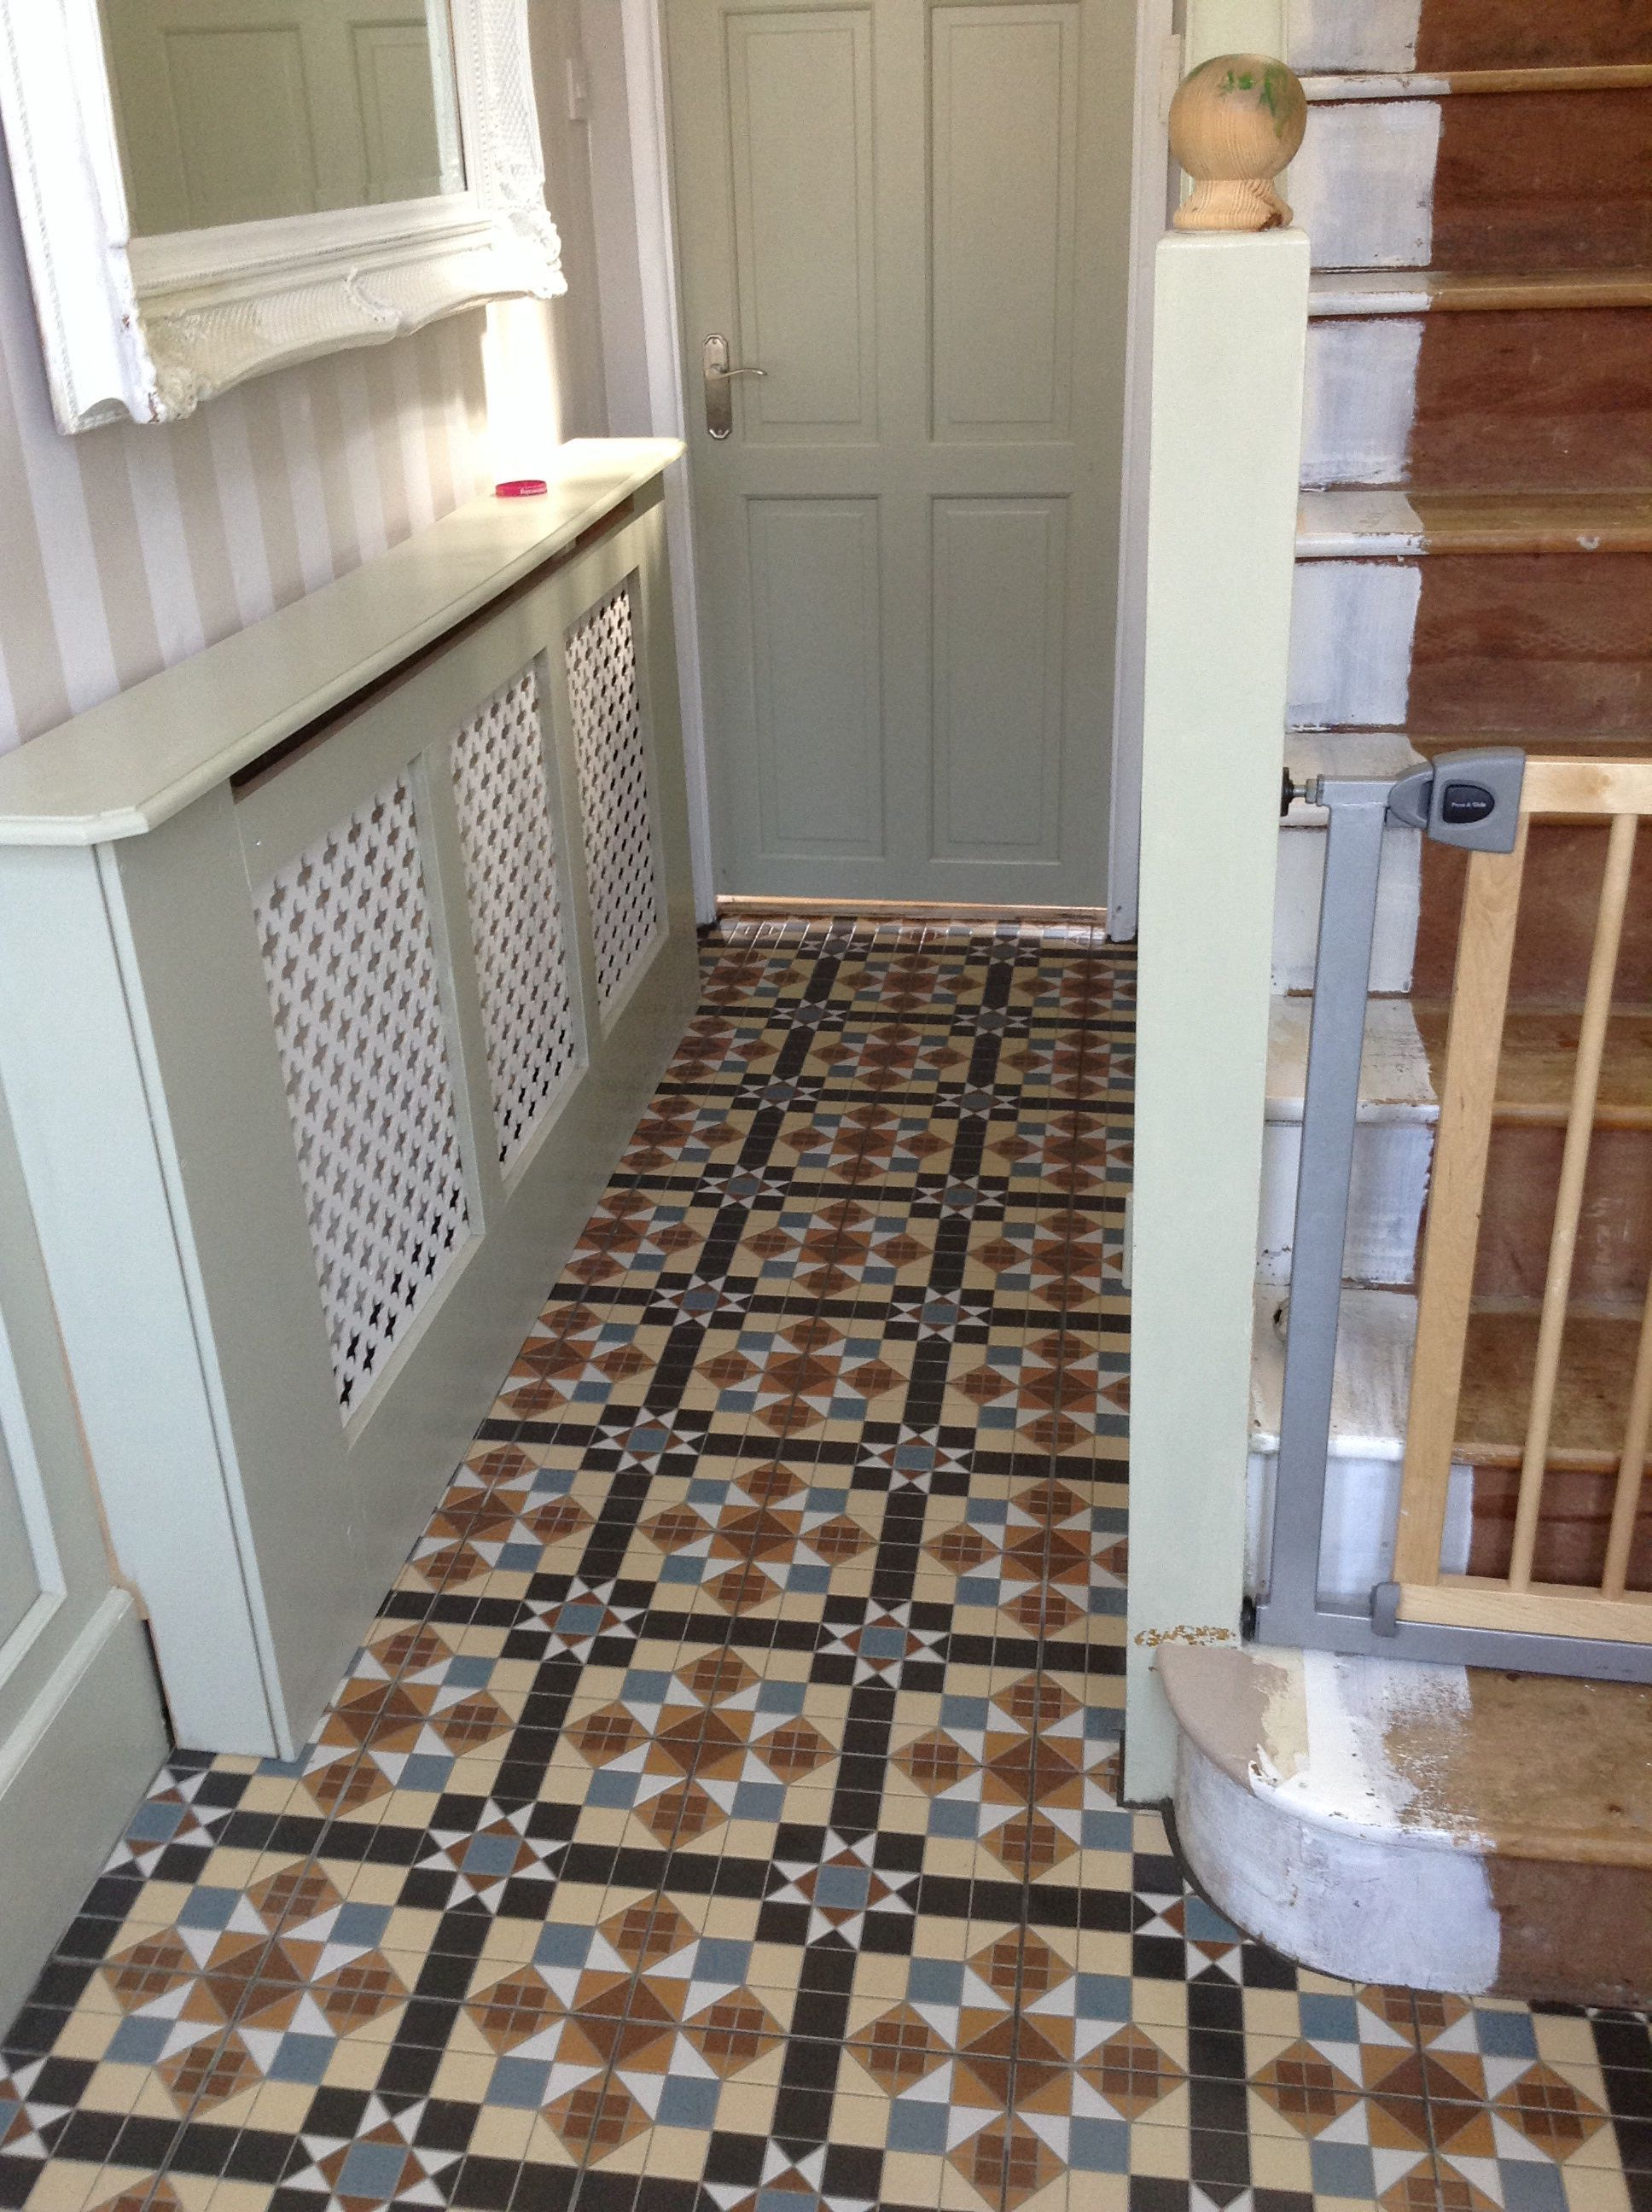 Reproduction Victorian Tiles - Home Safe